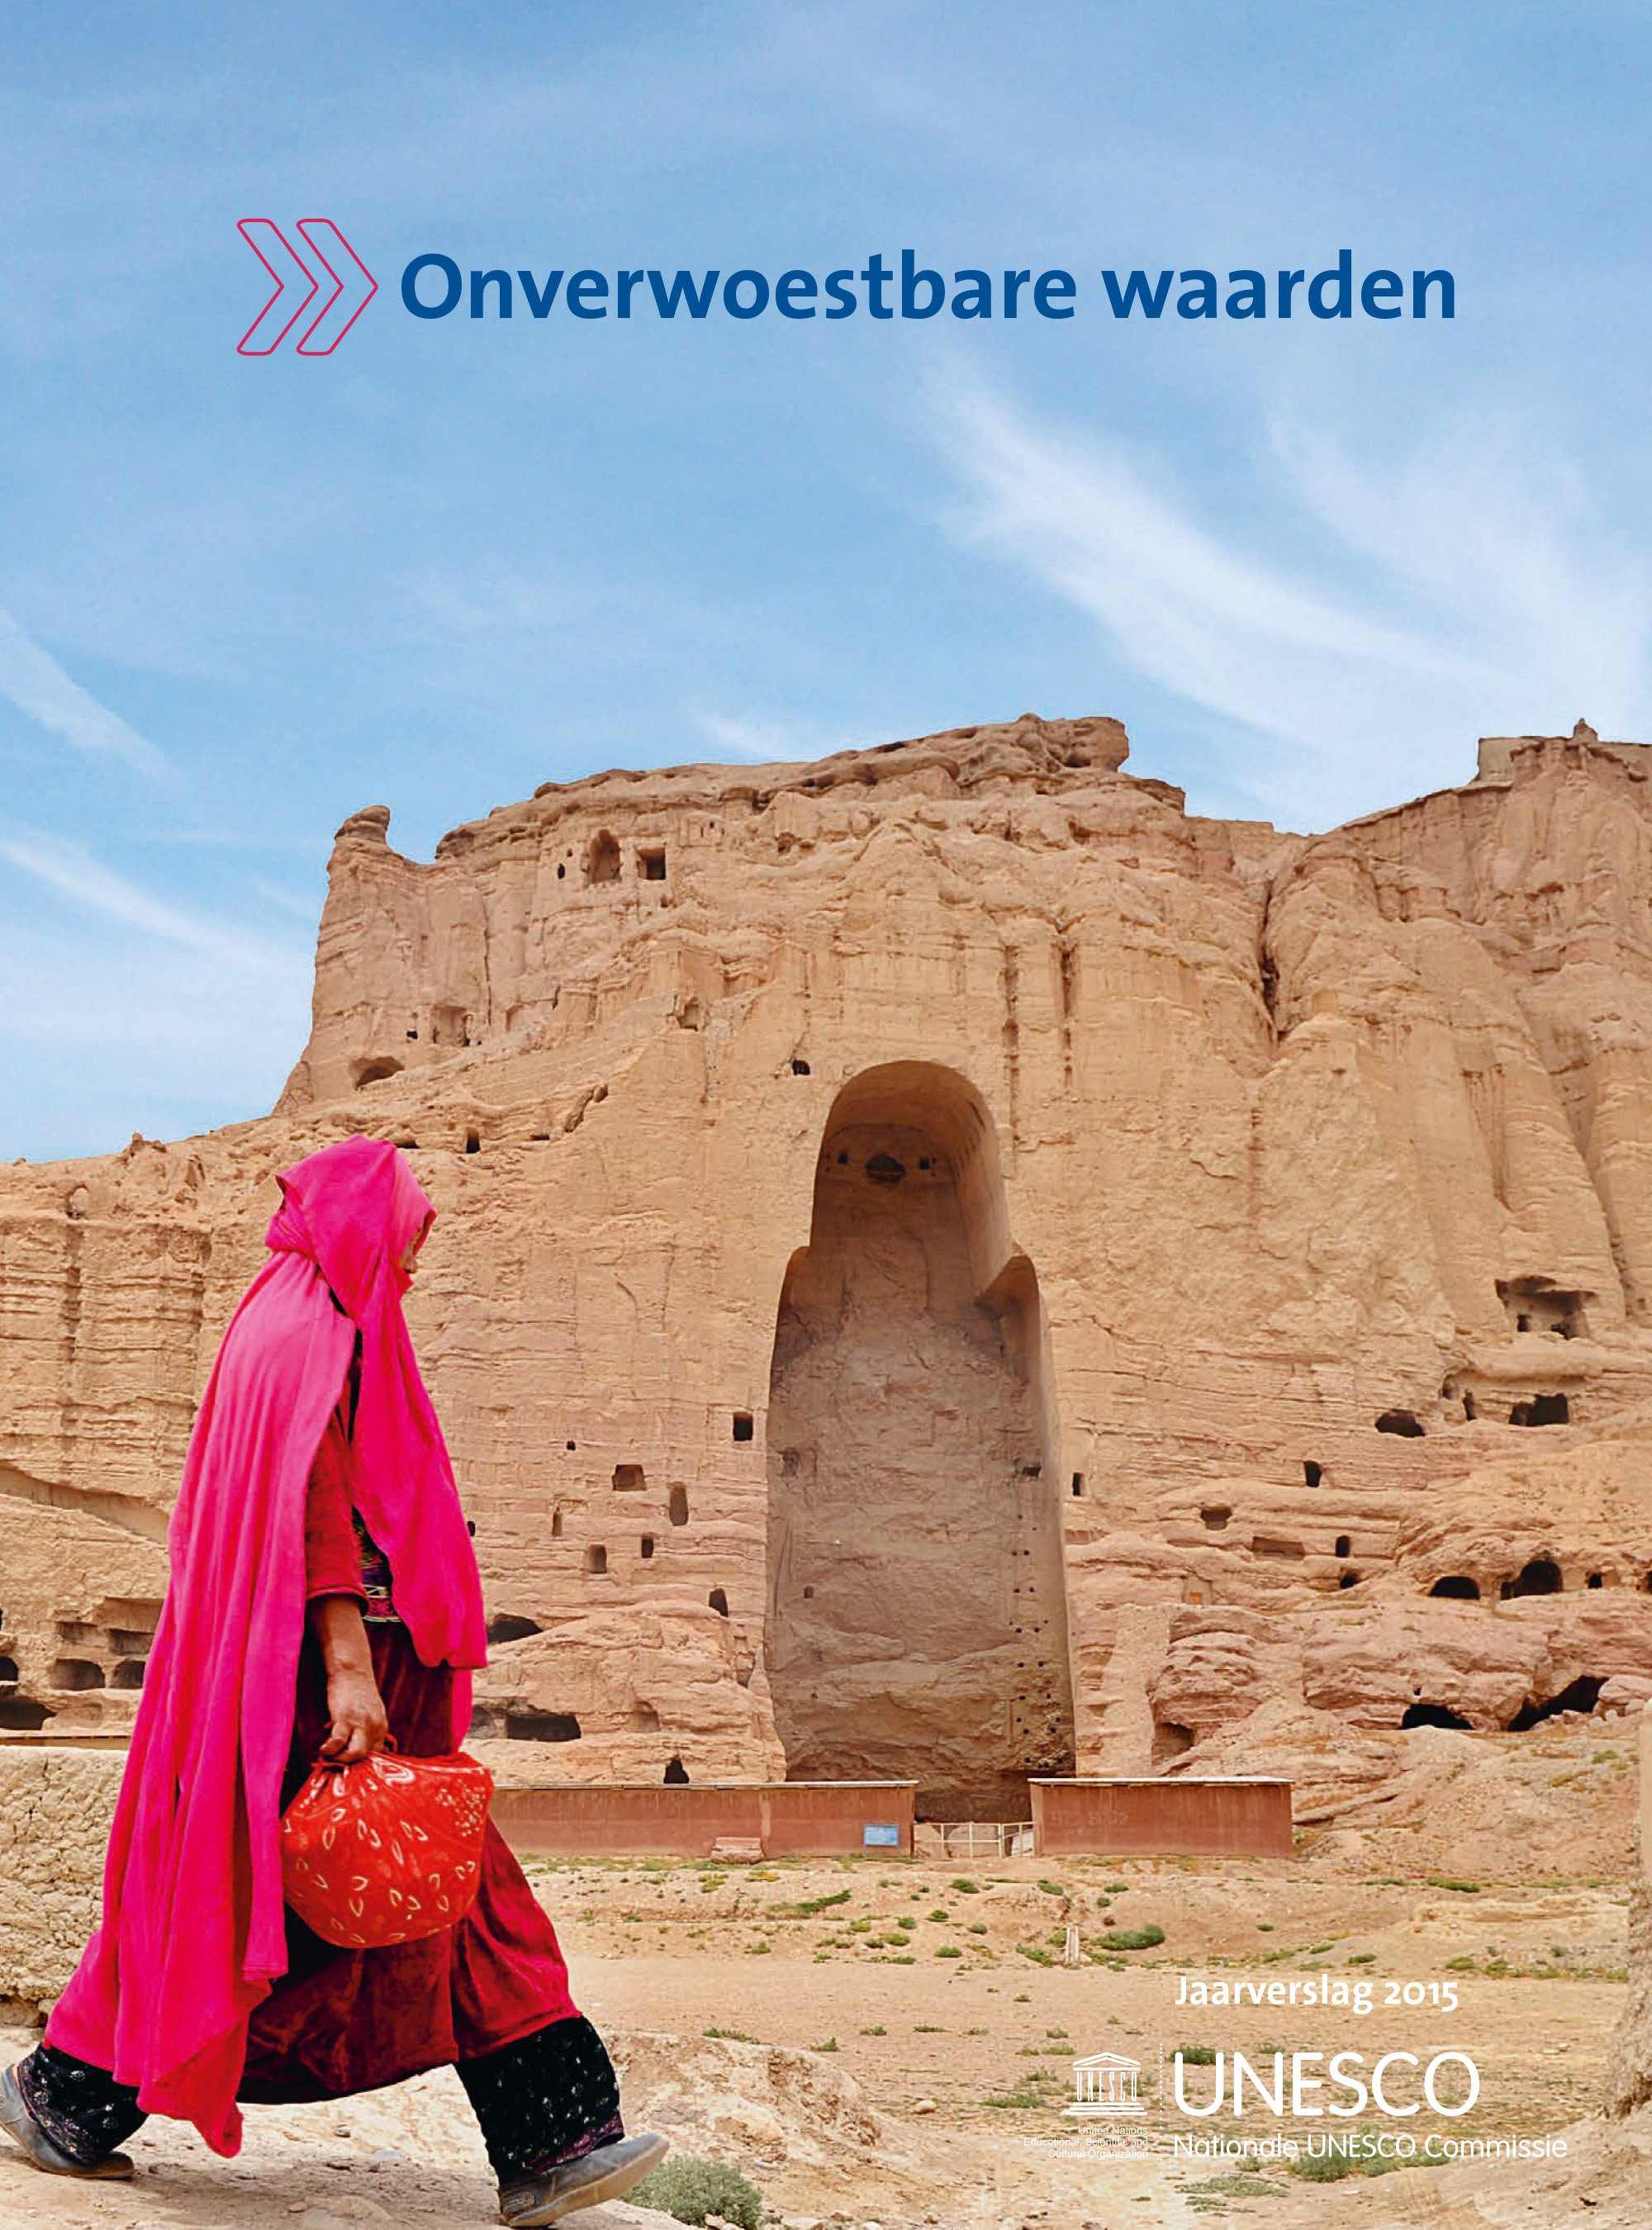 Cover jaarverslag Unesco Commissie 2015